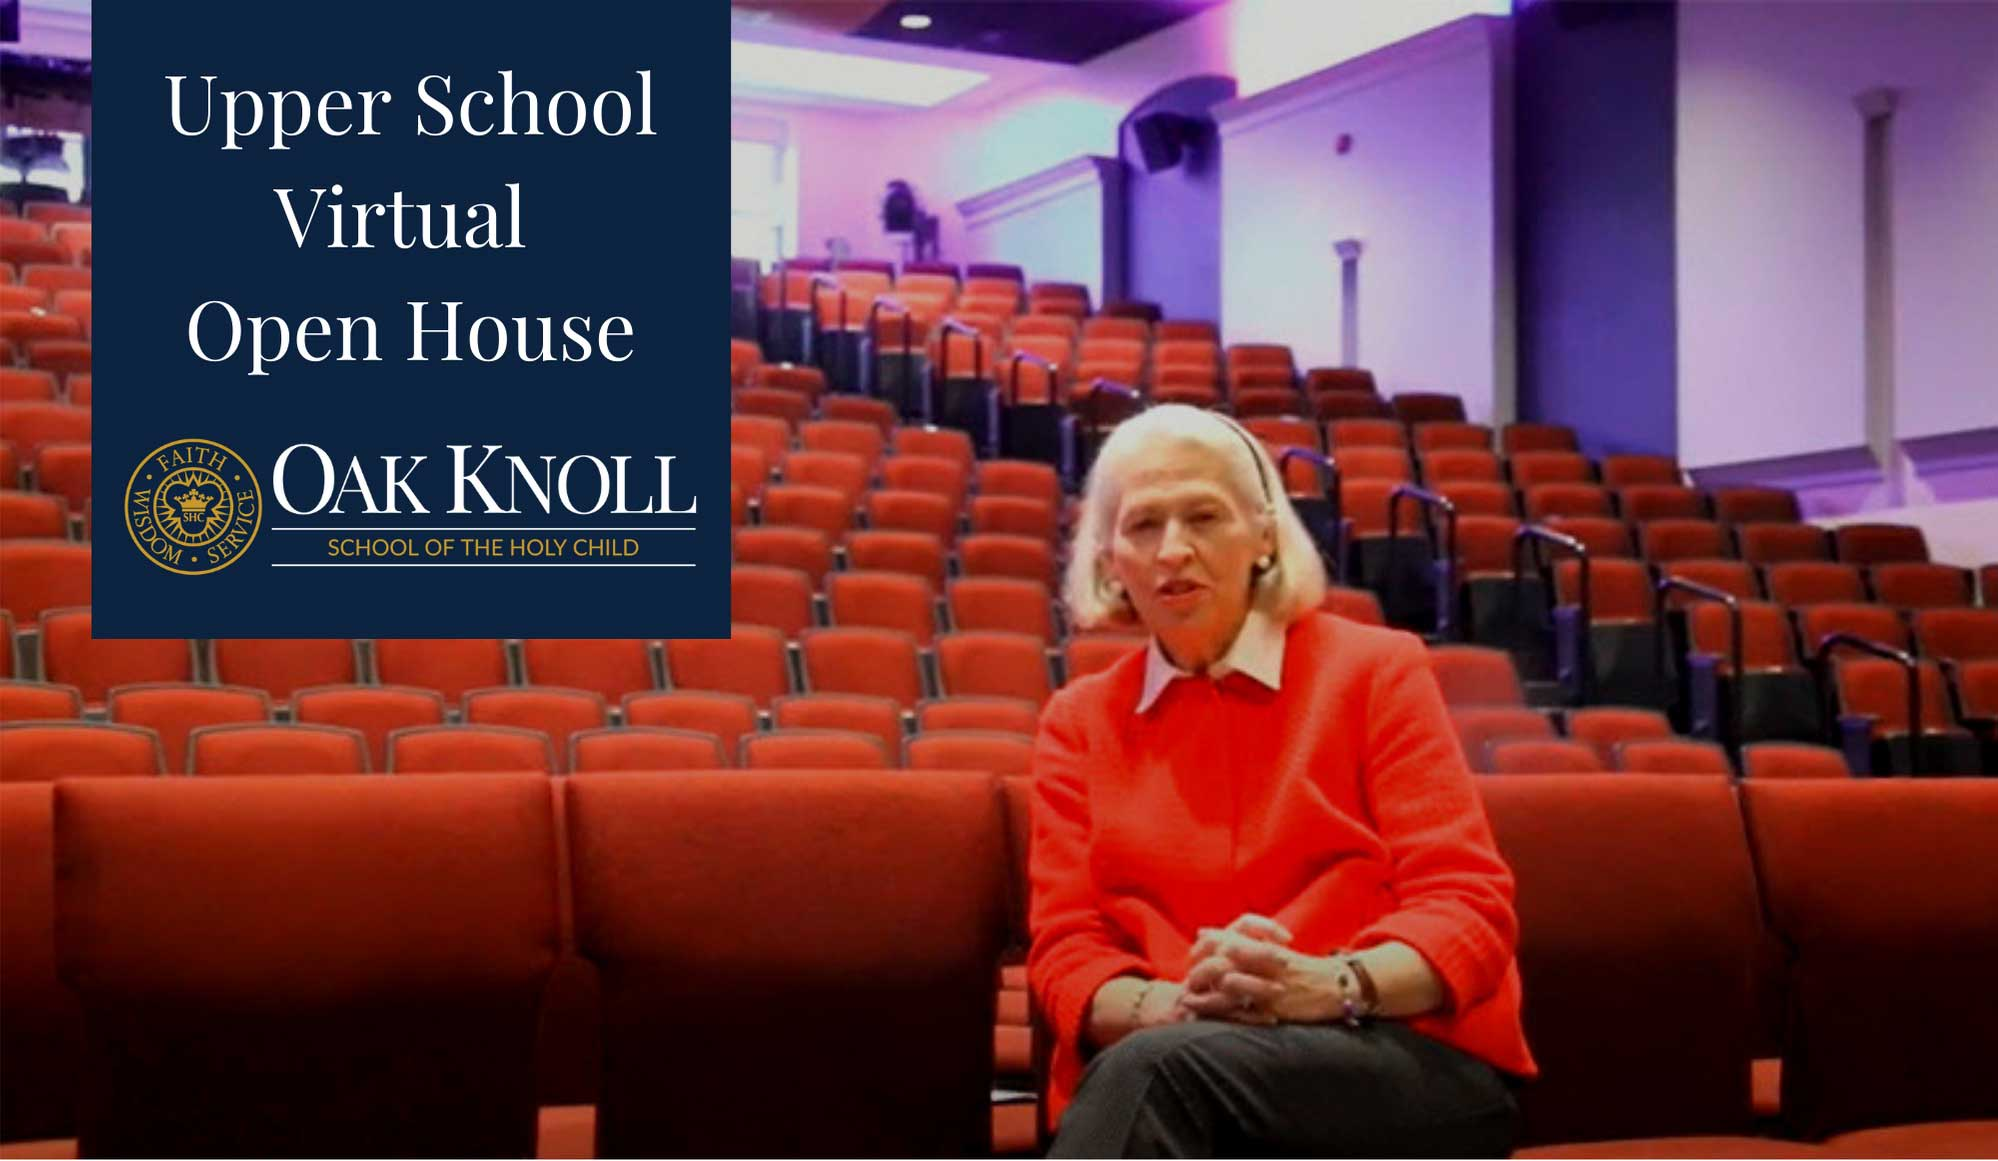 upper school virtual open house image link